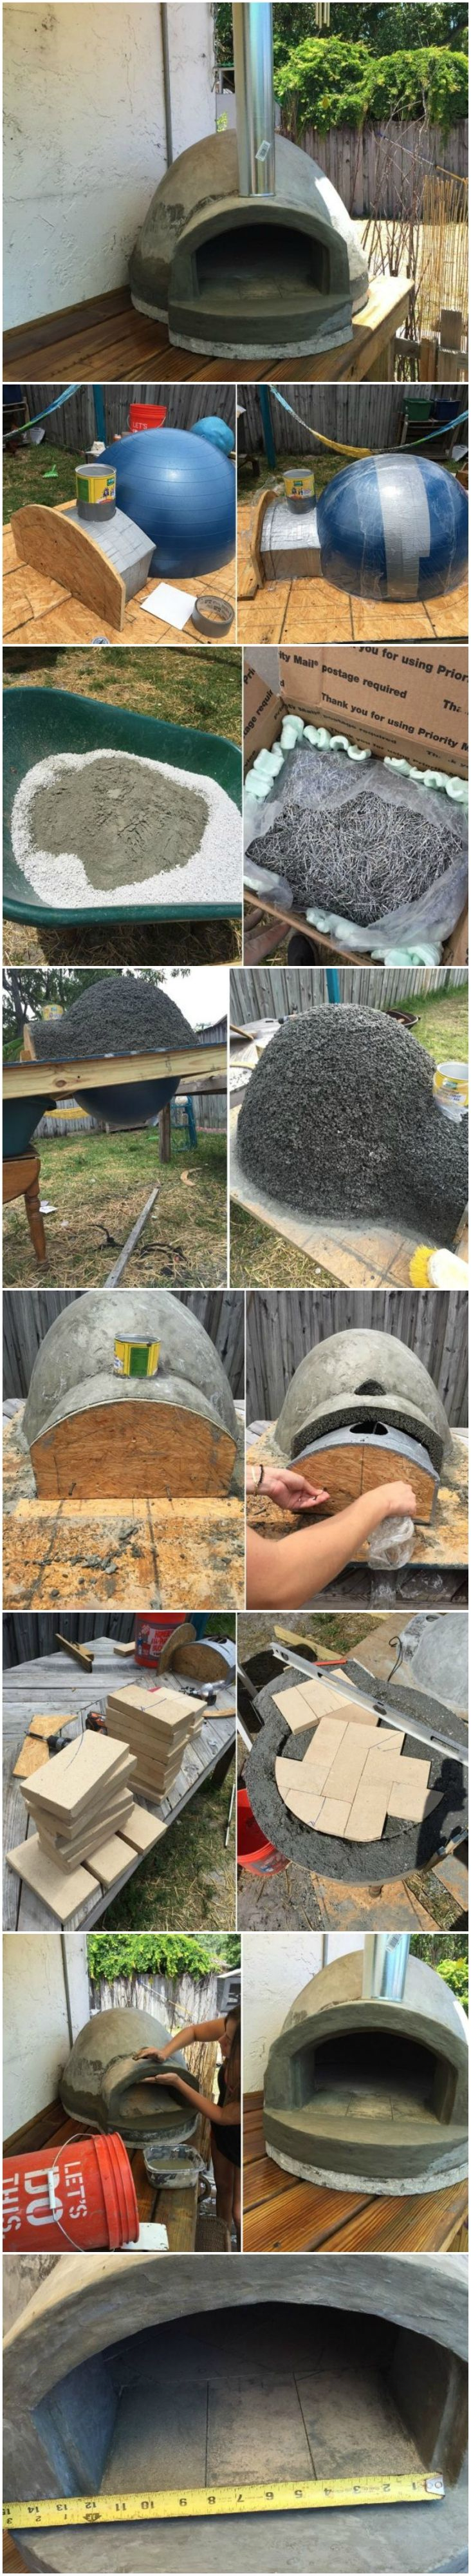 wood fired pizza oven made with an exercise ball for 135 diy discover thousands of images about how to build your own diy outdoor wood stove oven cooker grill and smoker